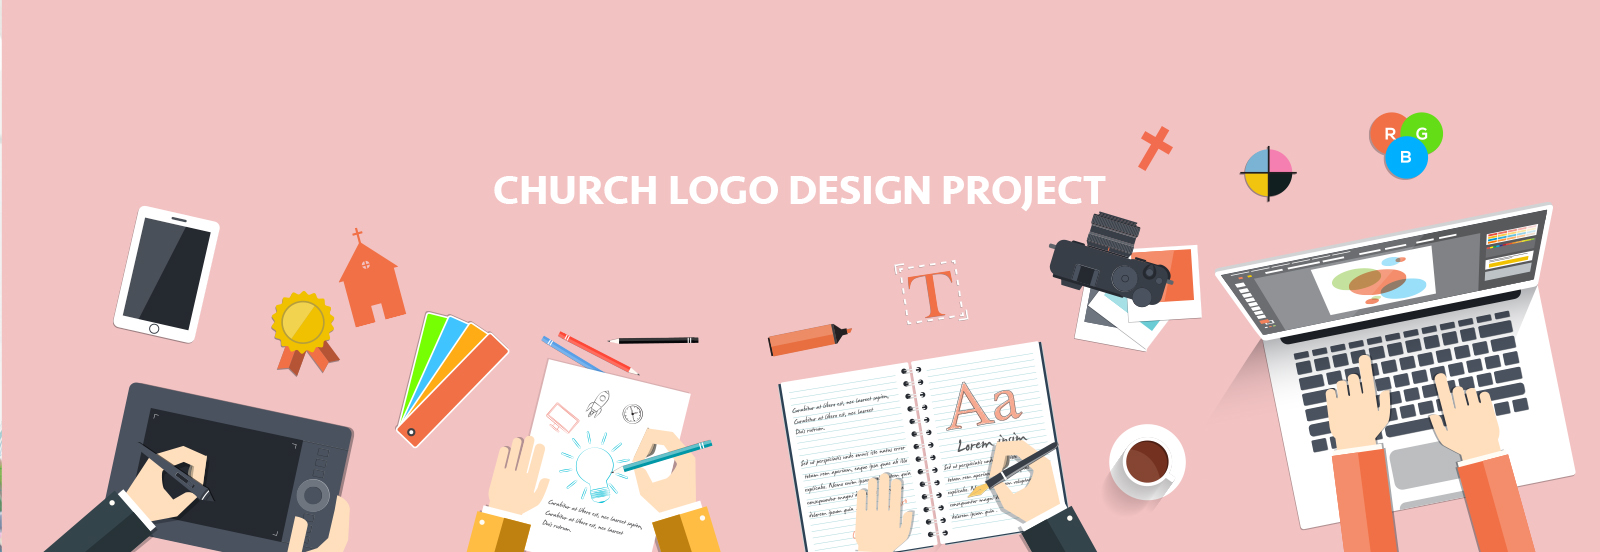 Church Logo Design Project